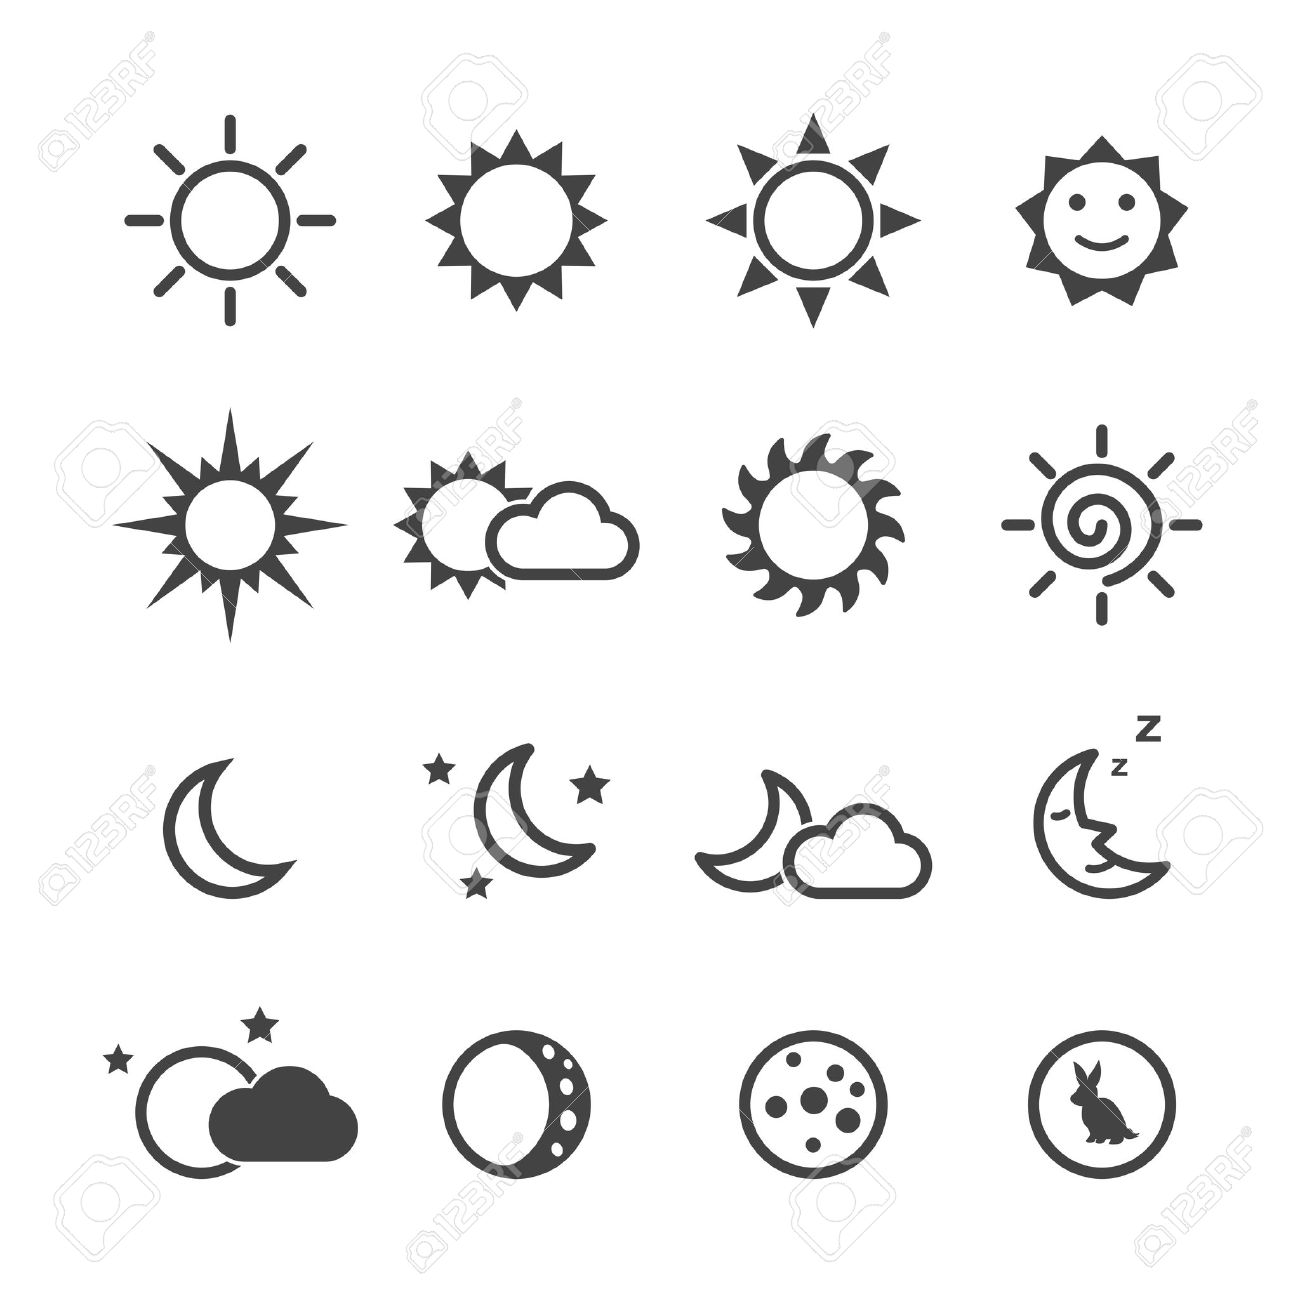 Sun and moon icons mono vector symbols royalty free cliparts sun and moon icons mono vector symbols stock vector 40903607 biocorpaavc Images